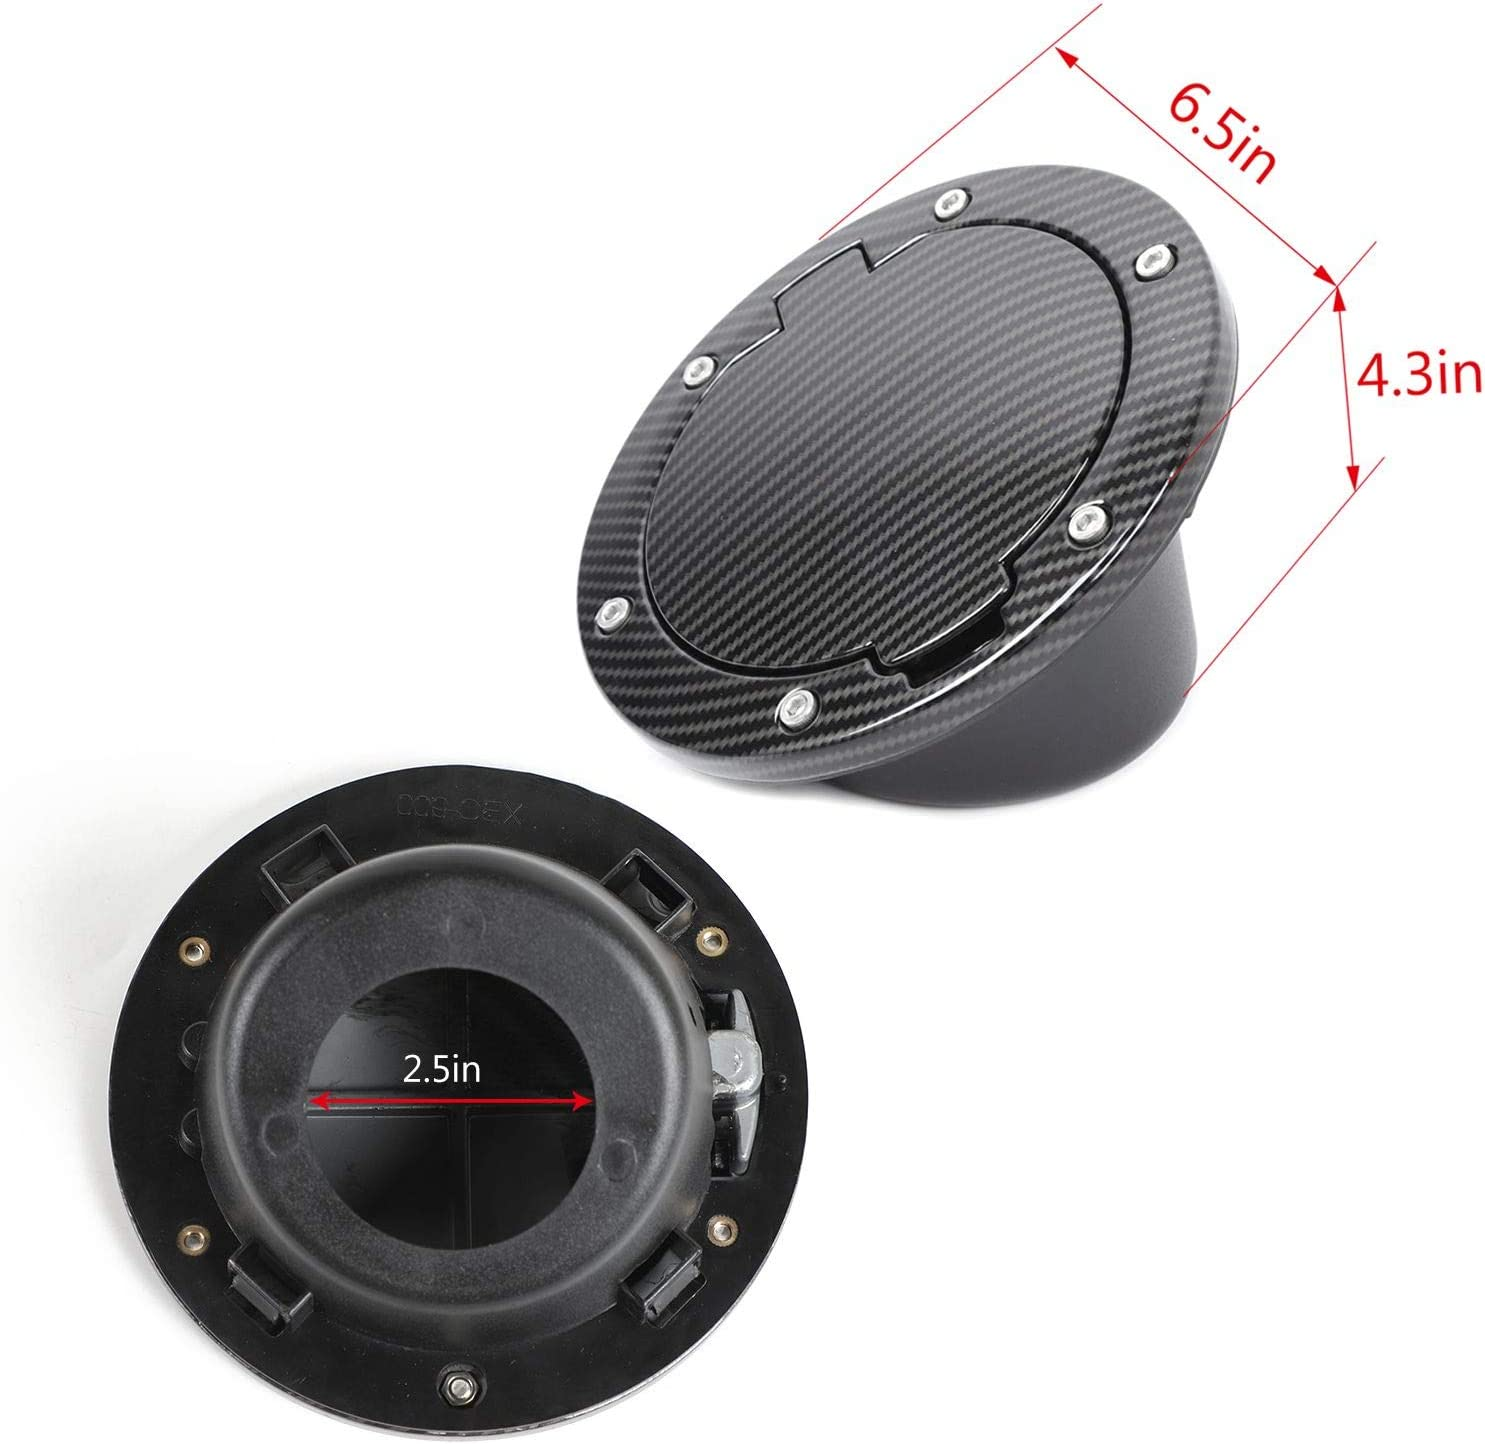 Carbon Fiber Texture JeCar Fuel Door Cover Aluminum Alloy Gas Cap Cover Exterior Accessories for 2007-2018 Jeep Wrangler JK /& Unlimited